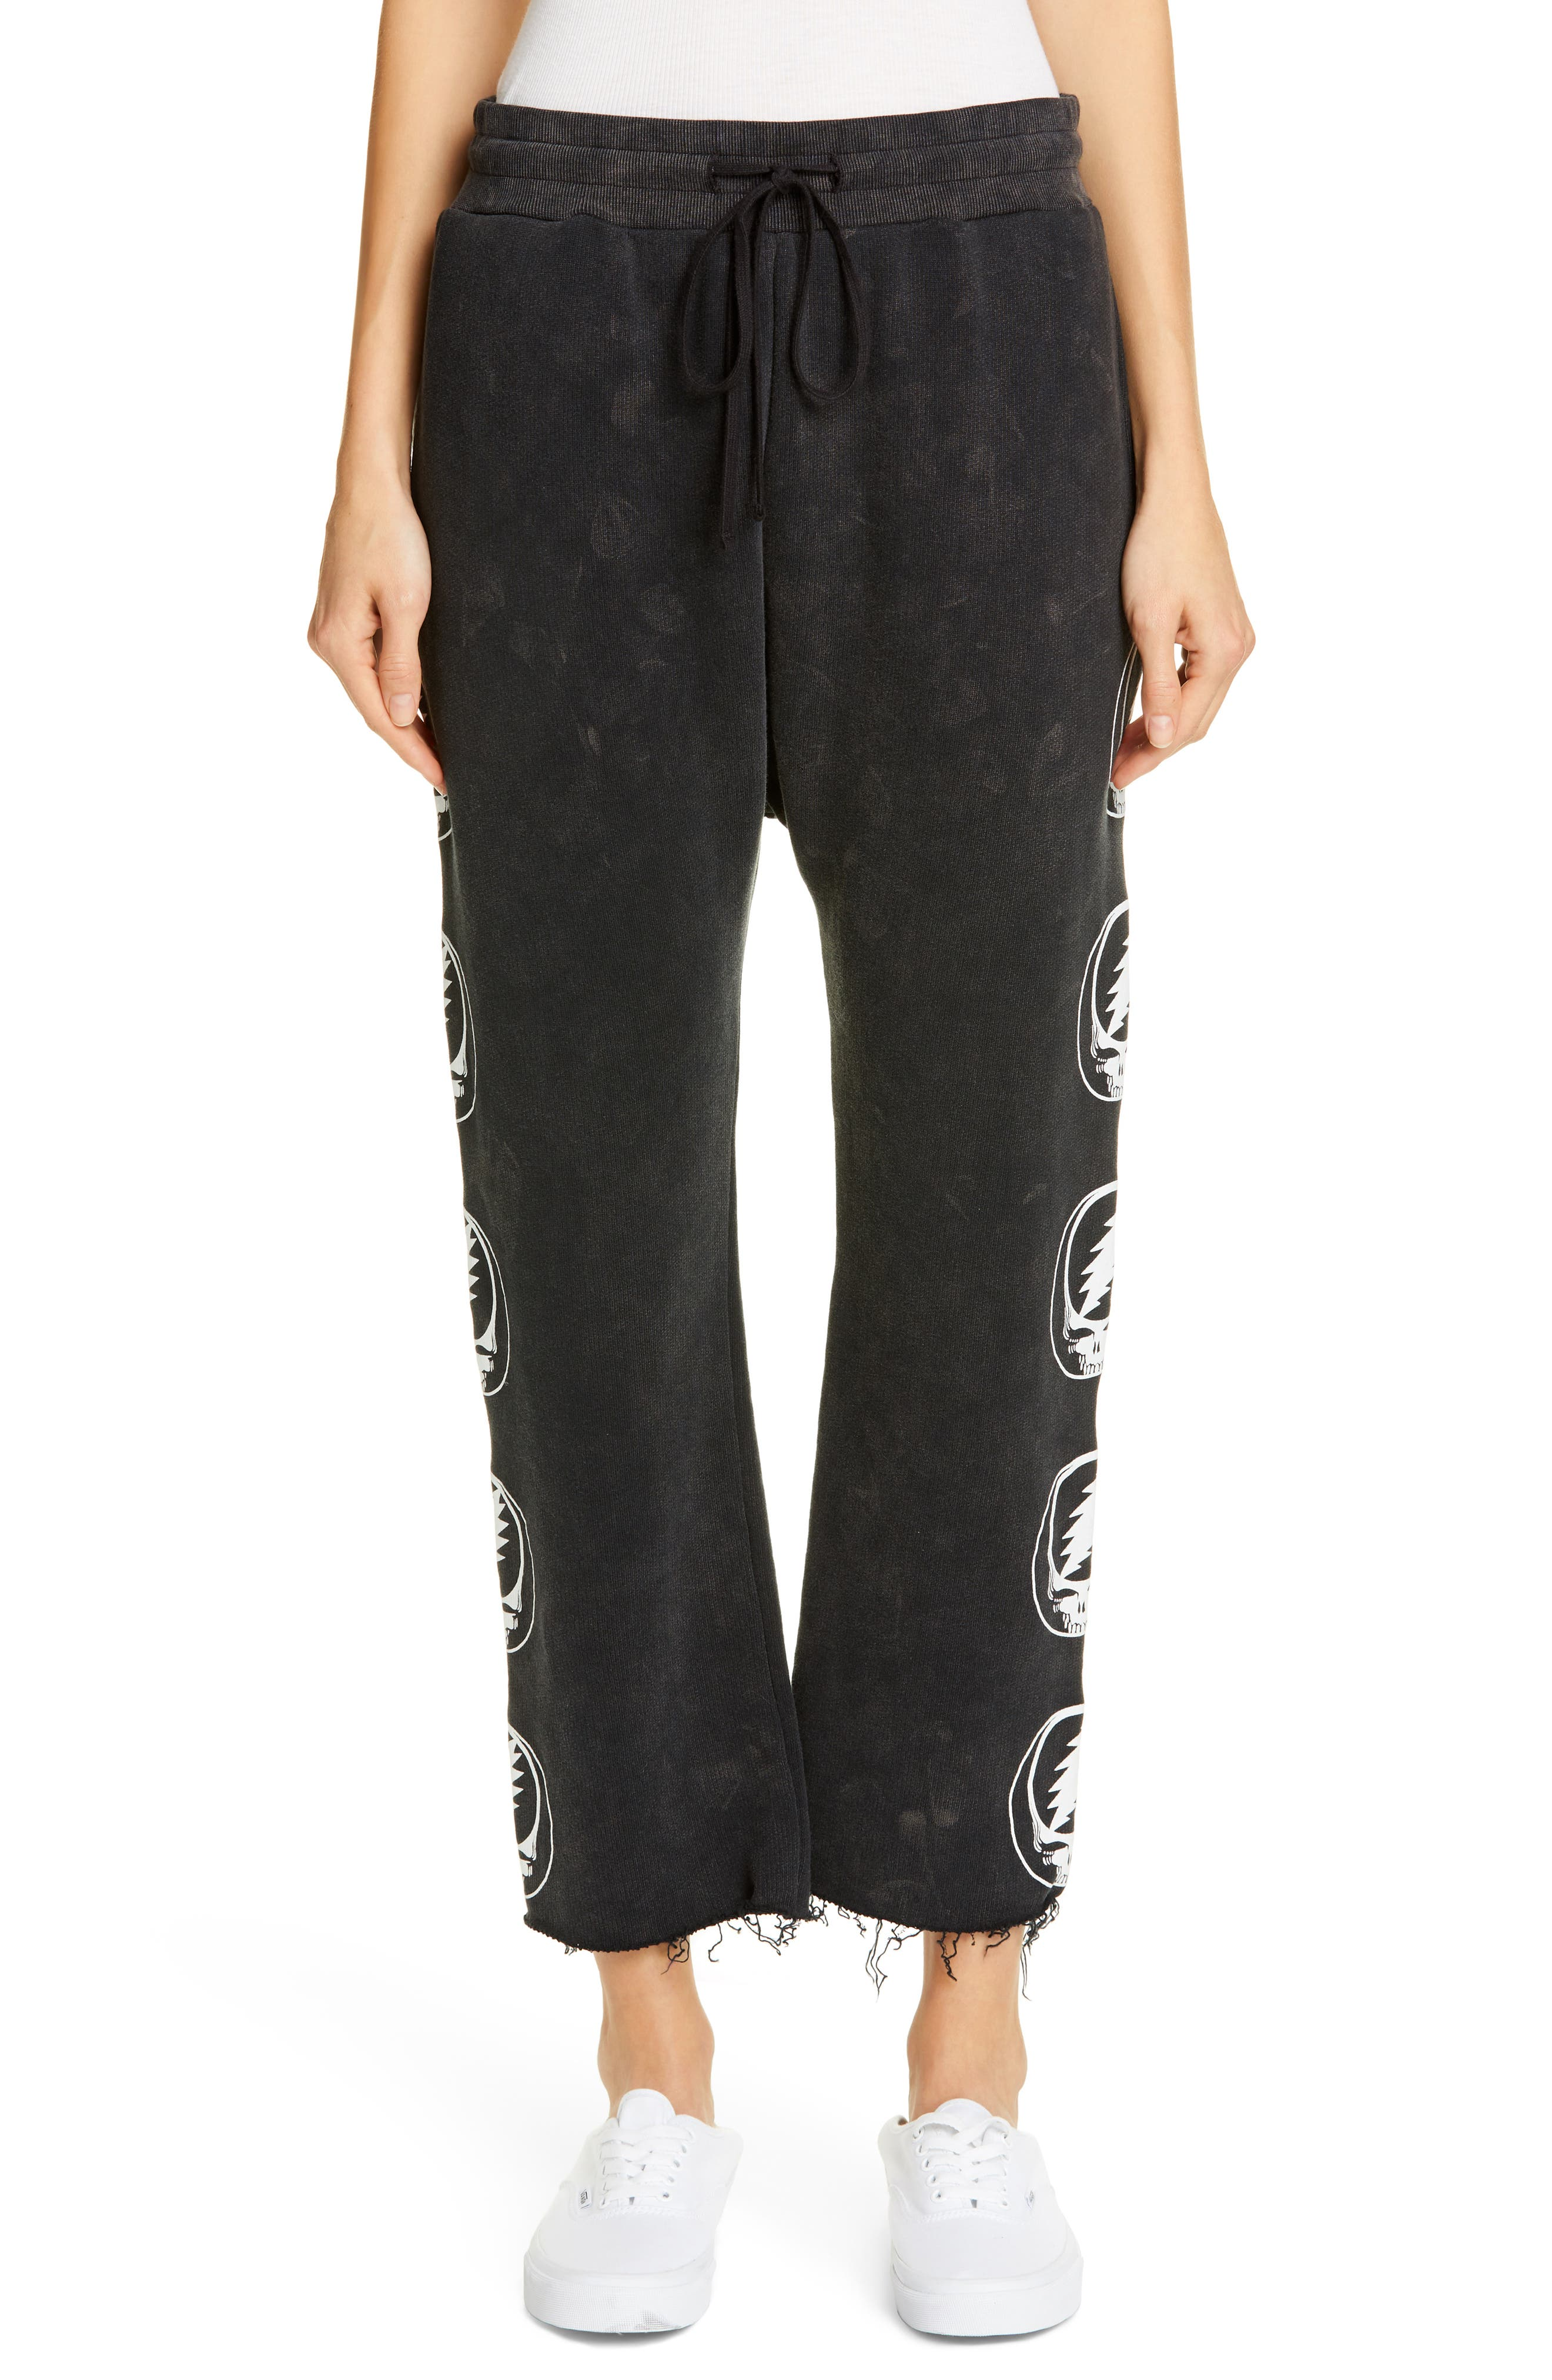 Steal Your Face Graphic Crop Sweatpants, Main, color, ACID BLACK